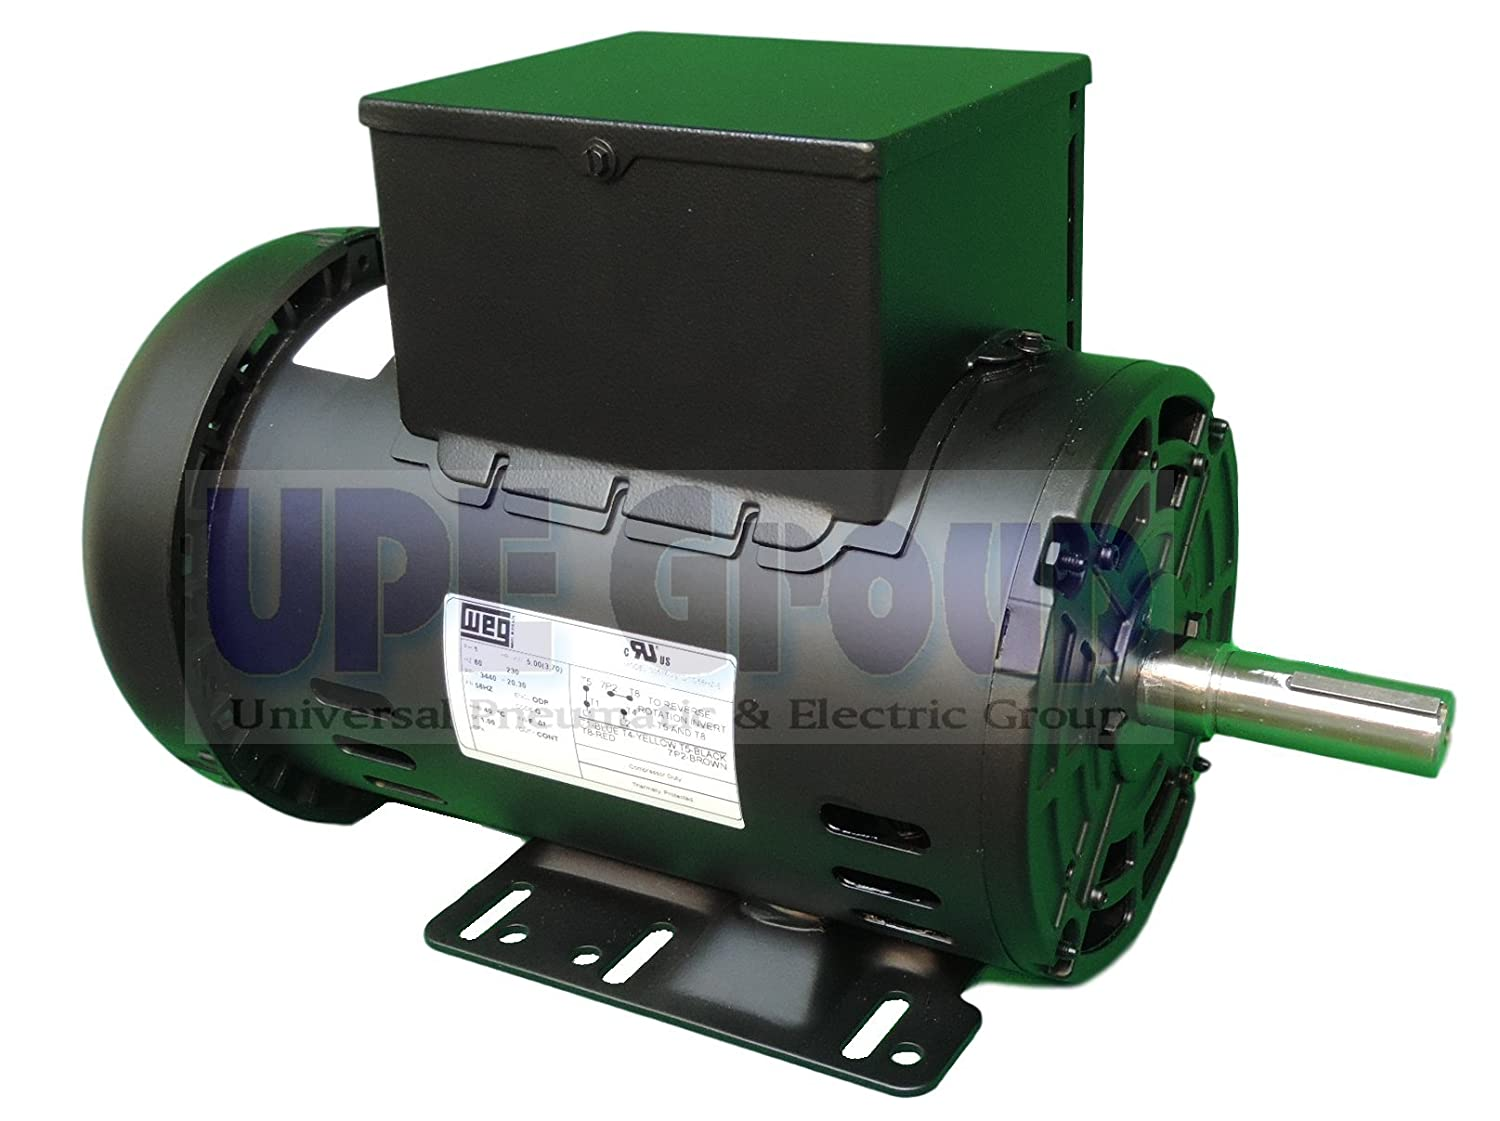 "NEW 5HP Electric Motor for air Compressor 56HZ frame 3455 RPM 7/8"" Shaft 19 AMP Heavy Duty"